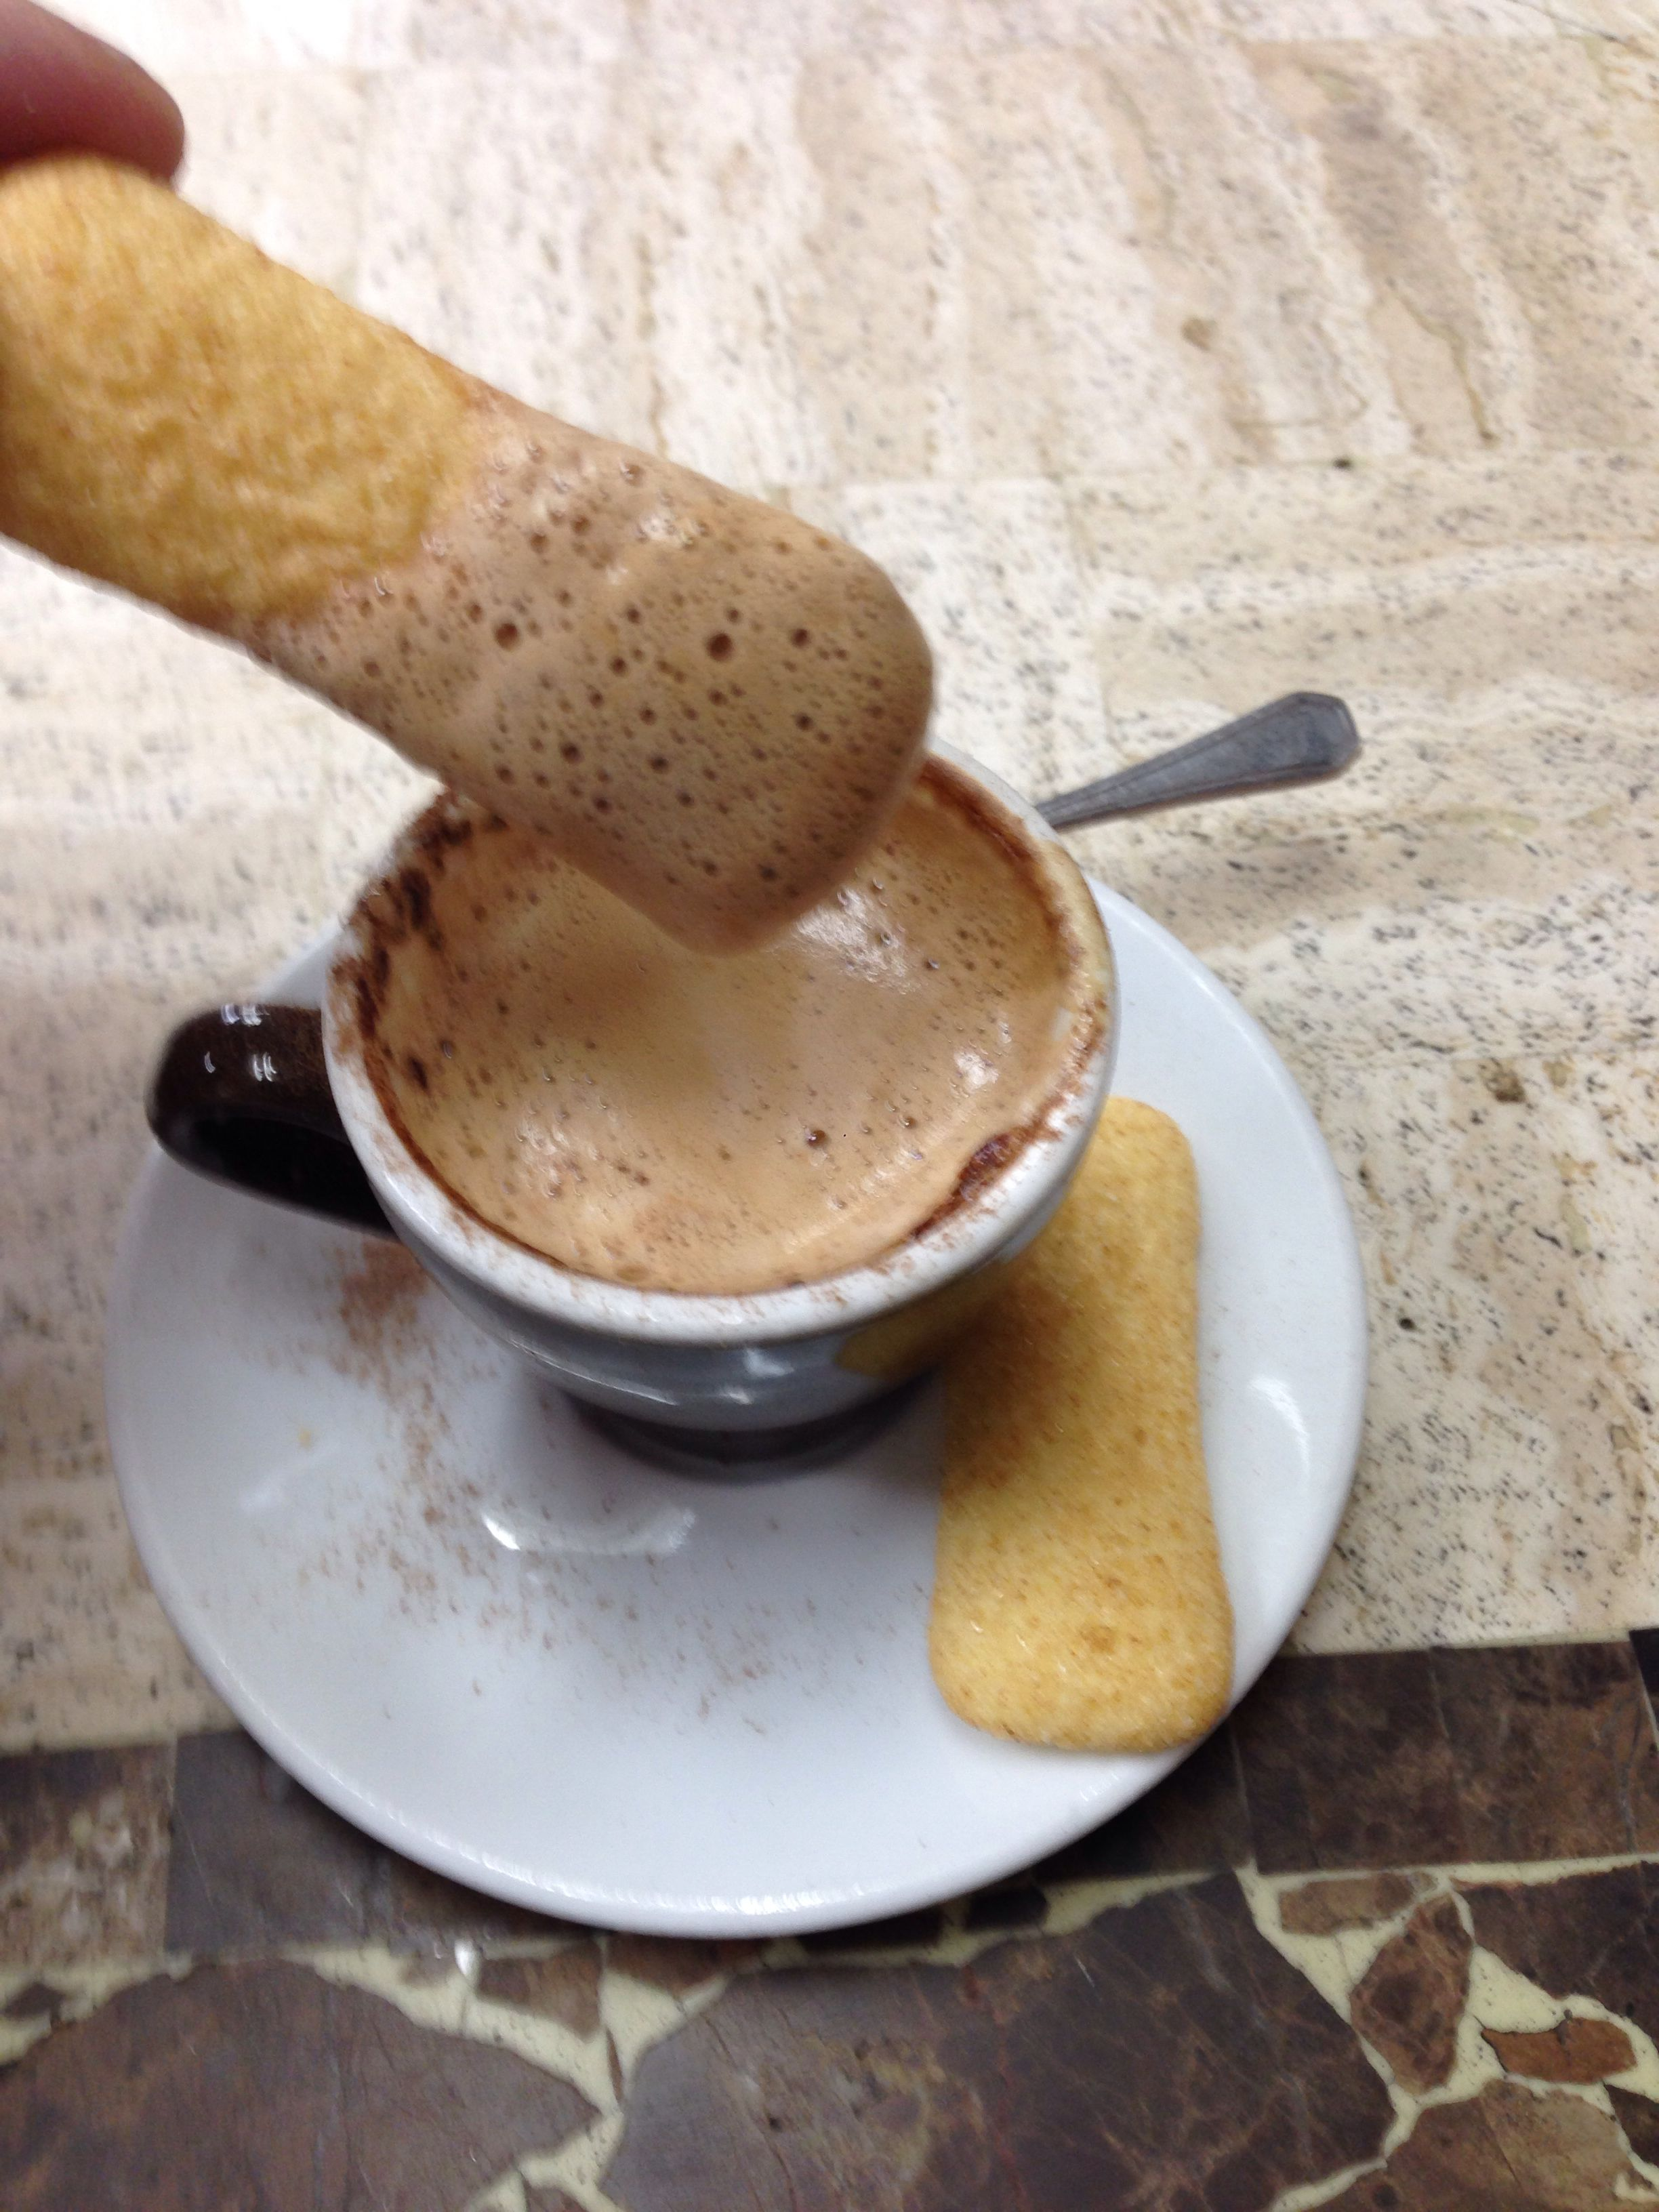 Espresso and pavesini